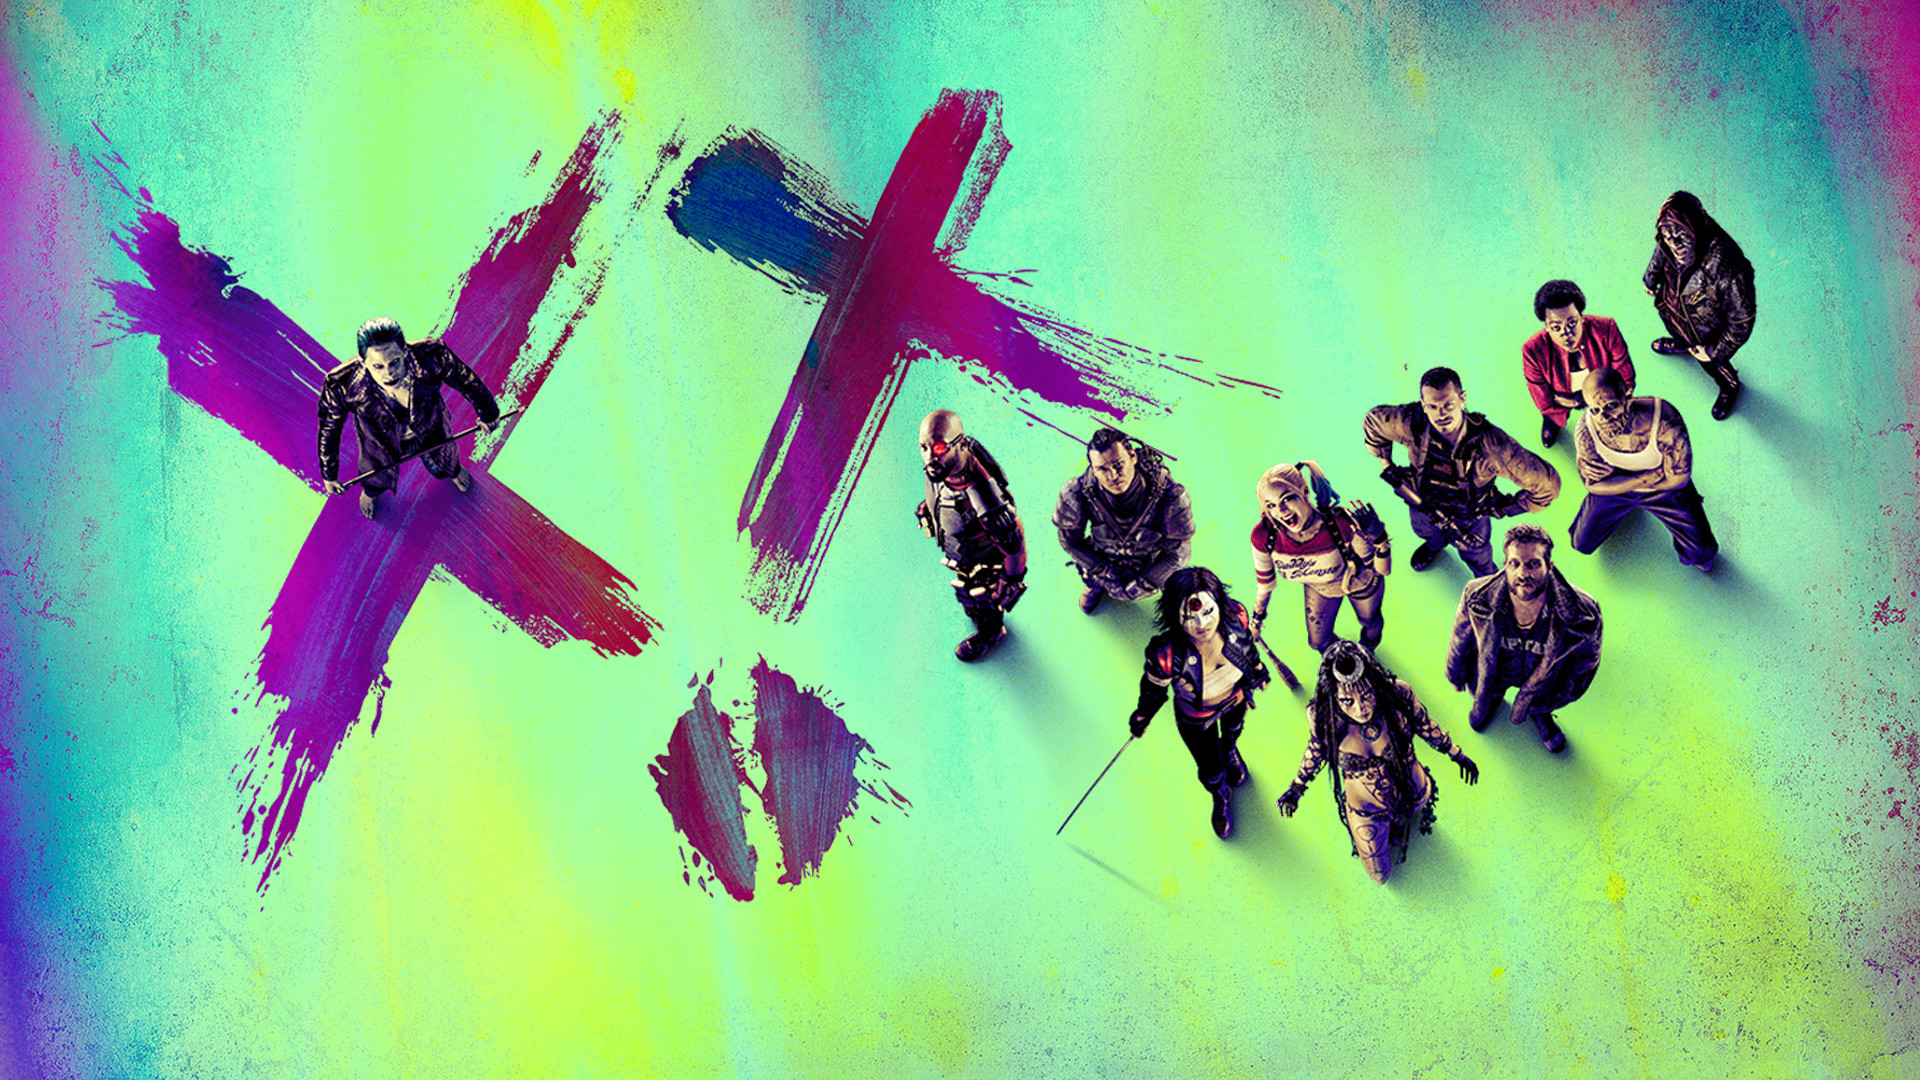 1920x1080 Suicide Squad Full HD Wallpaper